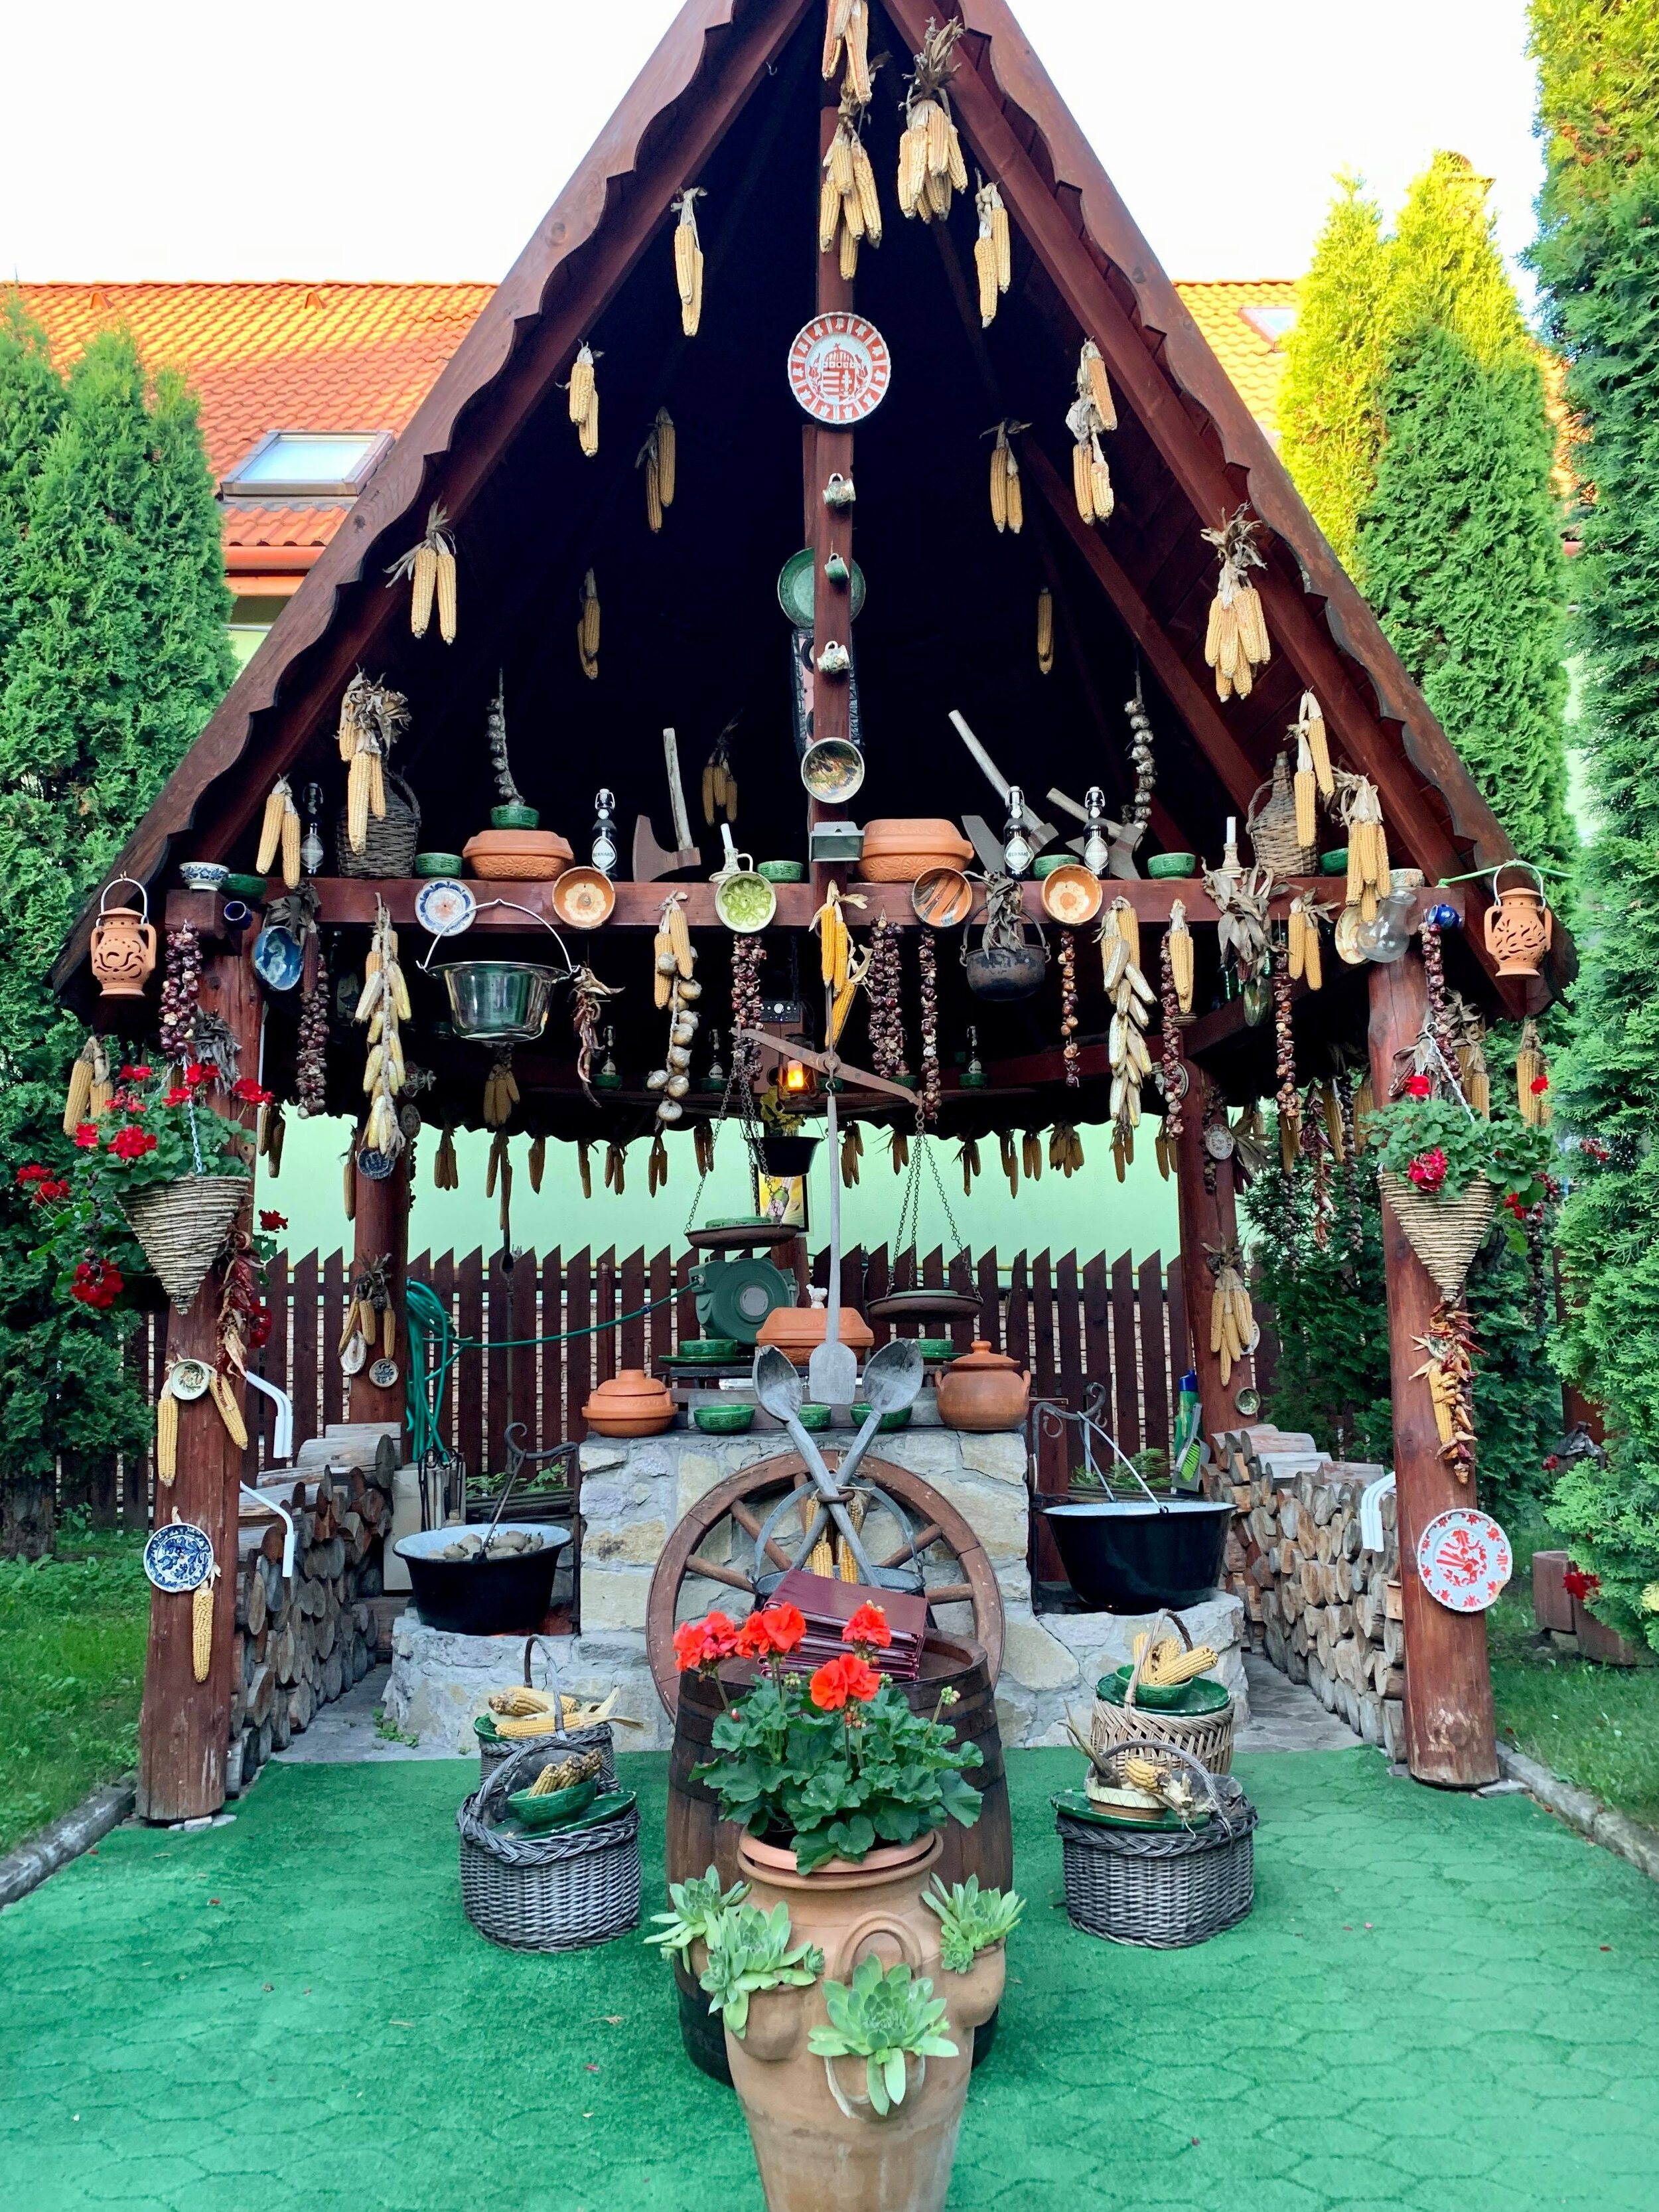 To eat… - A highly recommended traditional jaunt in the city - Gambrinus - serves up great Hungarian fare in a lush courtyard setting, contrasted with its much more traditional decor indoors.